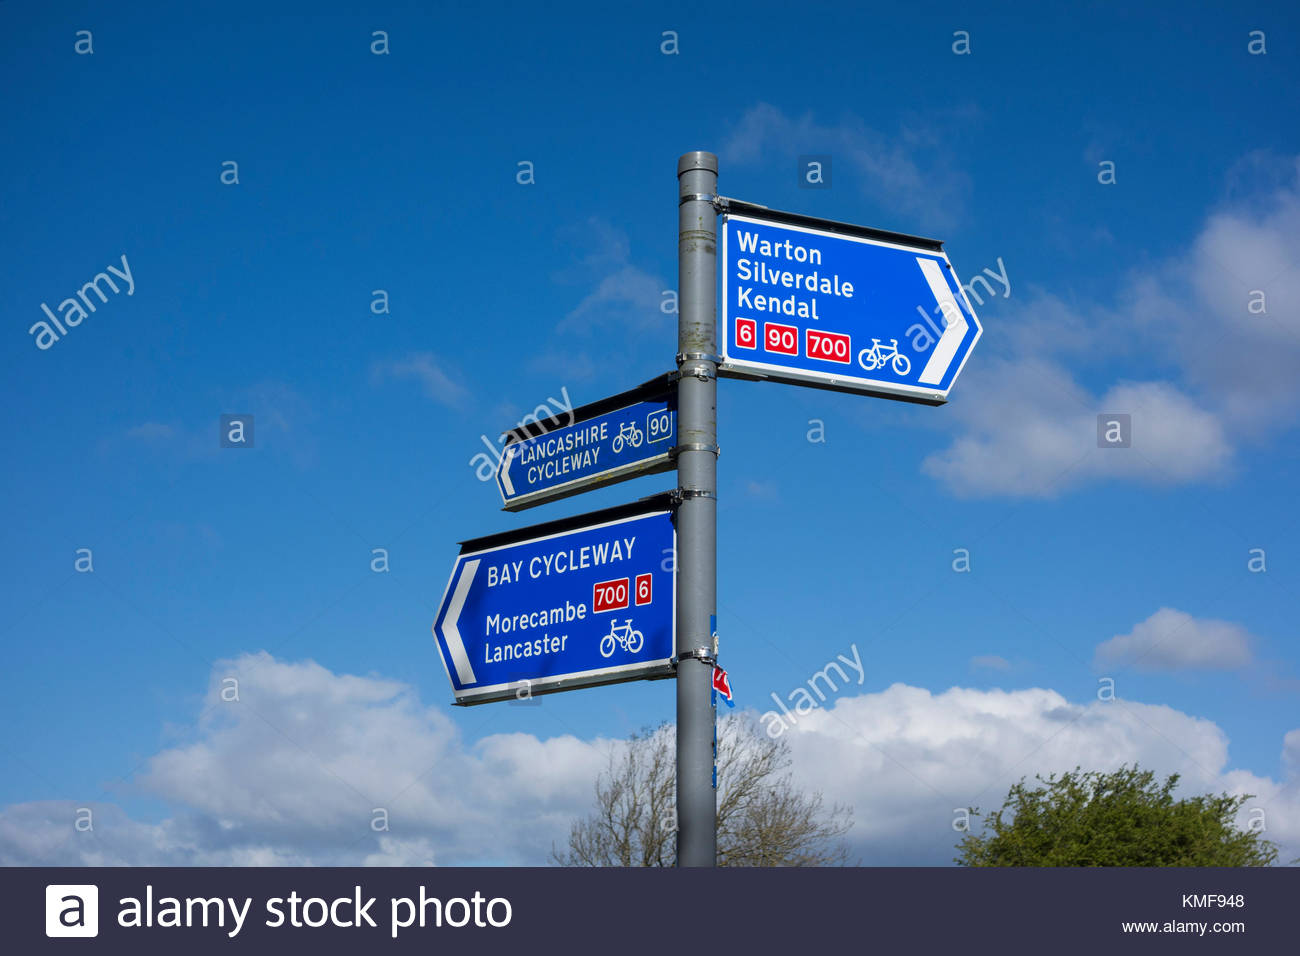 Bay Cycleway and Lancashire Cycleway sign near Carnforth in Lancashire, on NCN routes 6, 90 and 700 - Stock Image